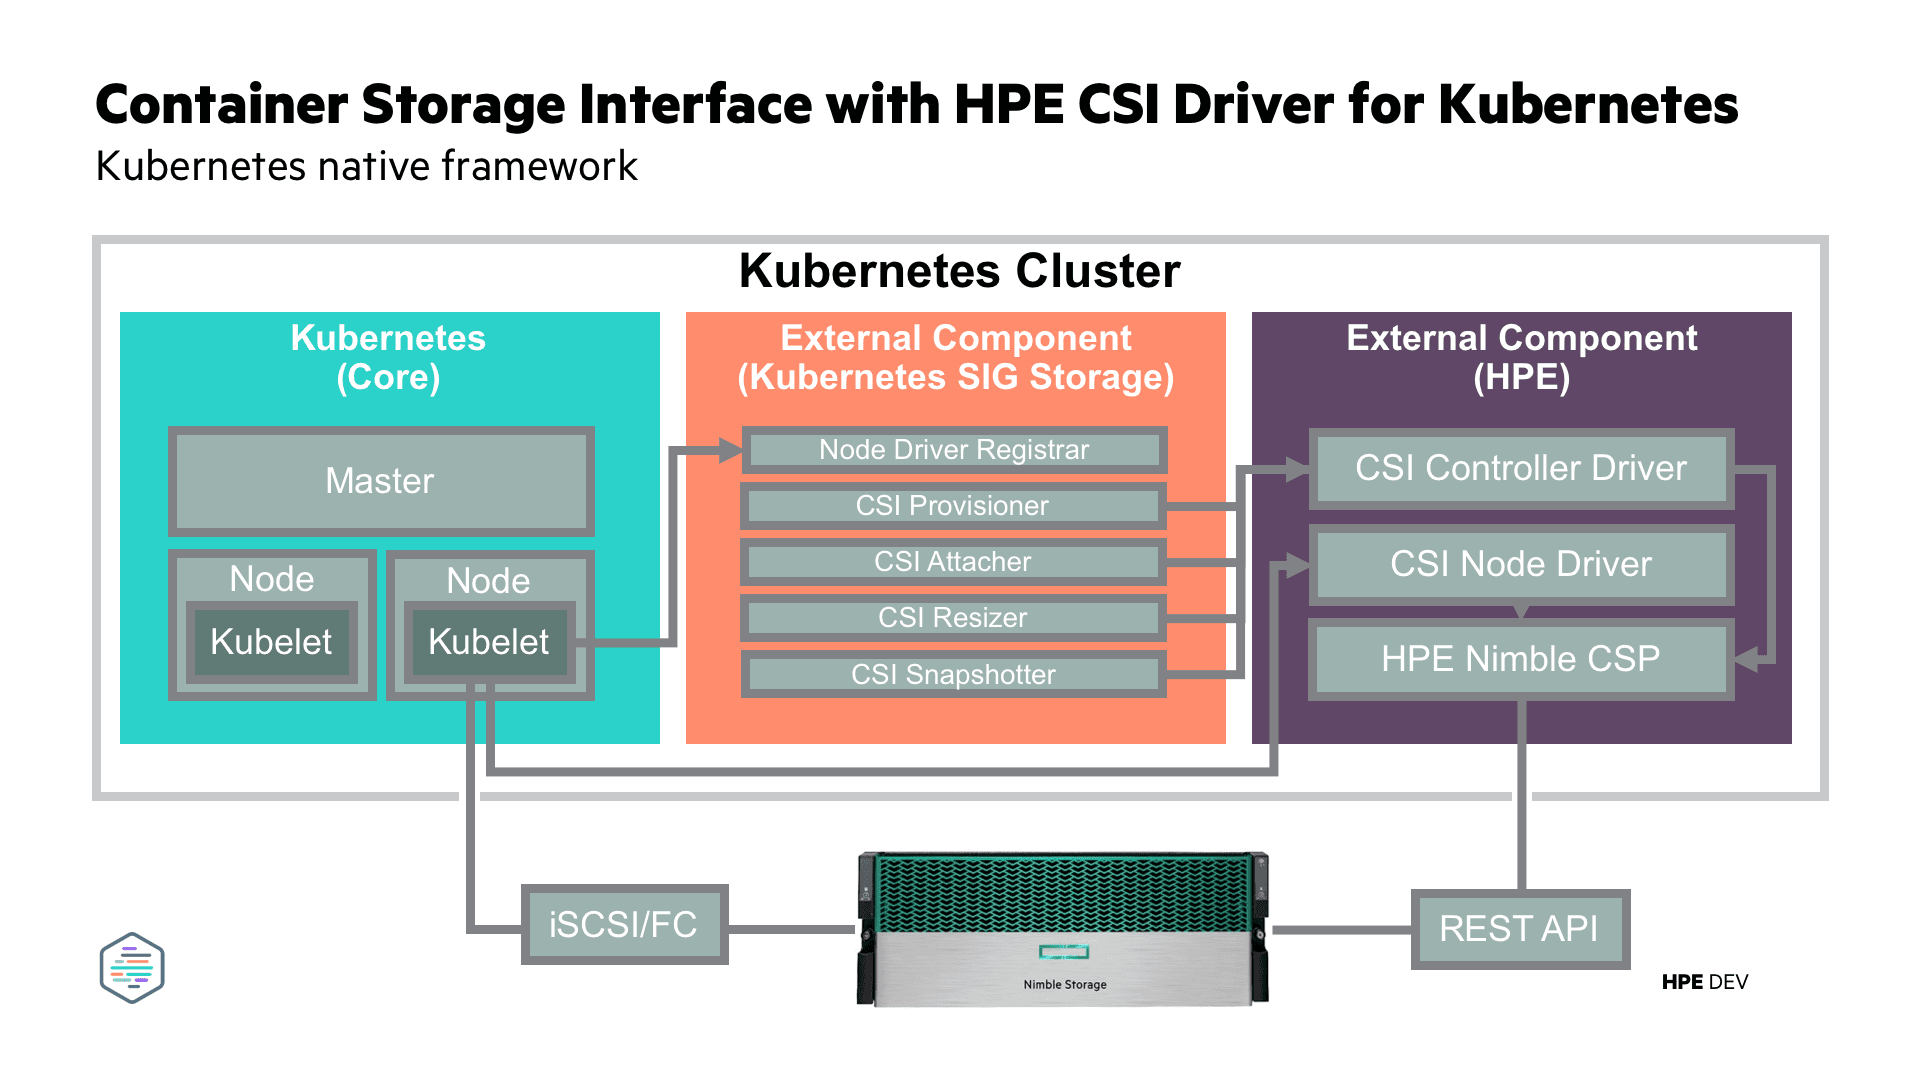 HPE CSI Driver for Kubernetes with HPE Nimble Storage CSP